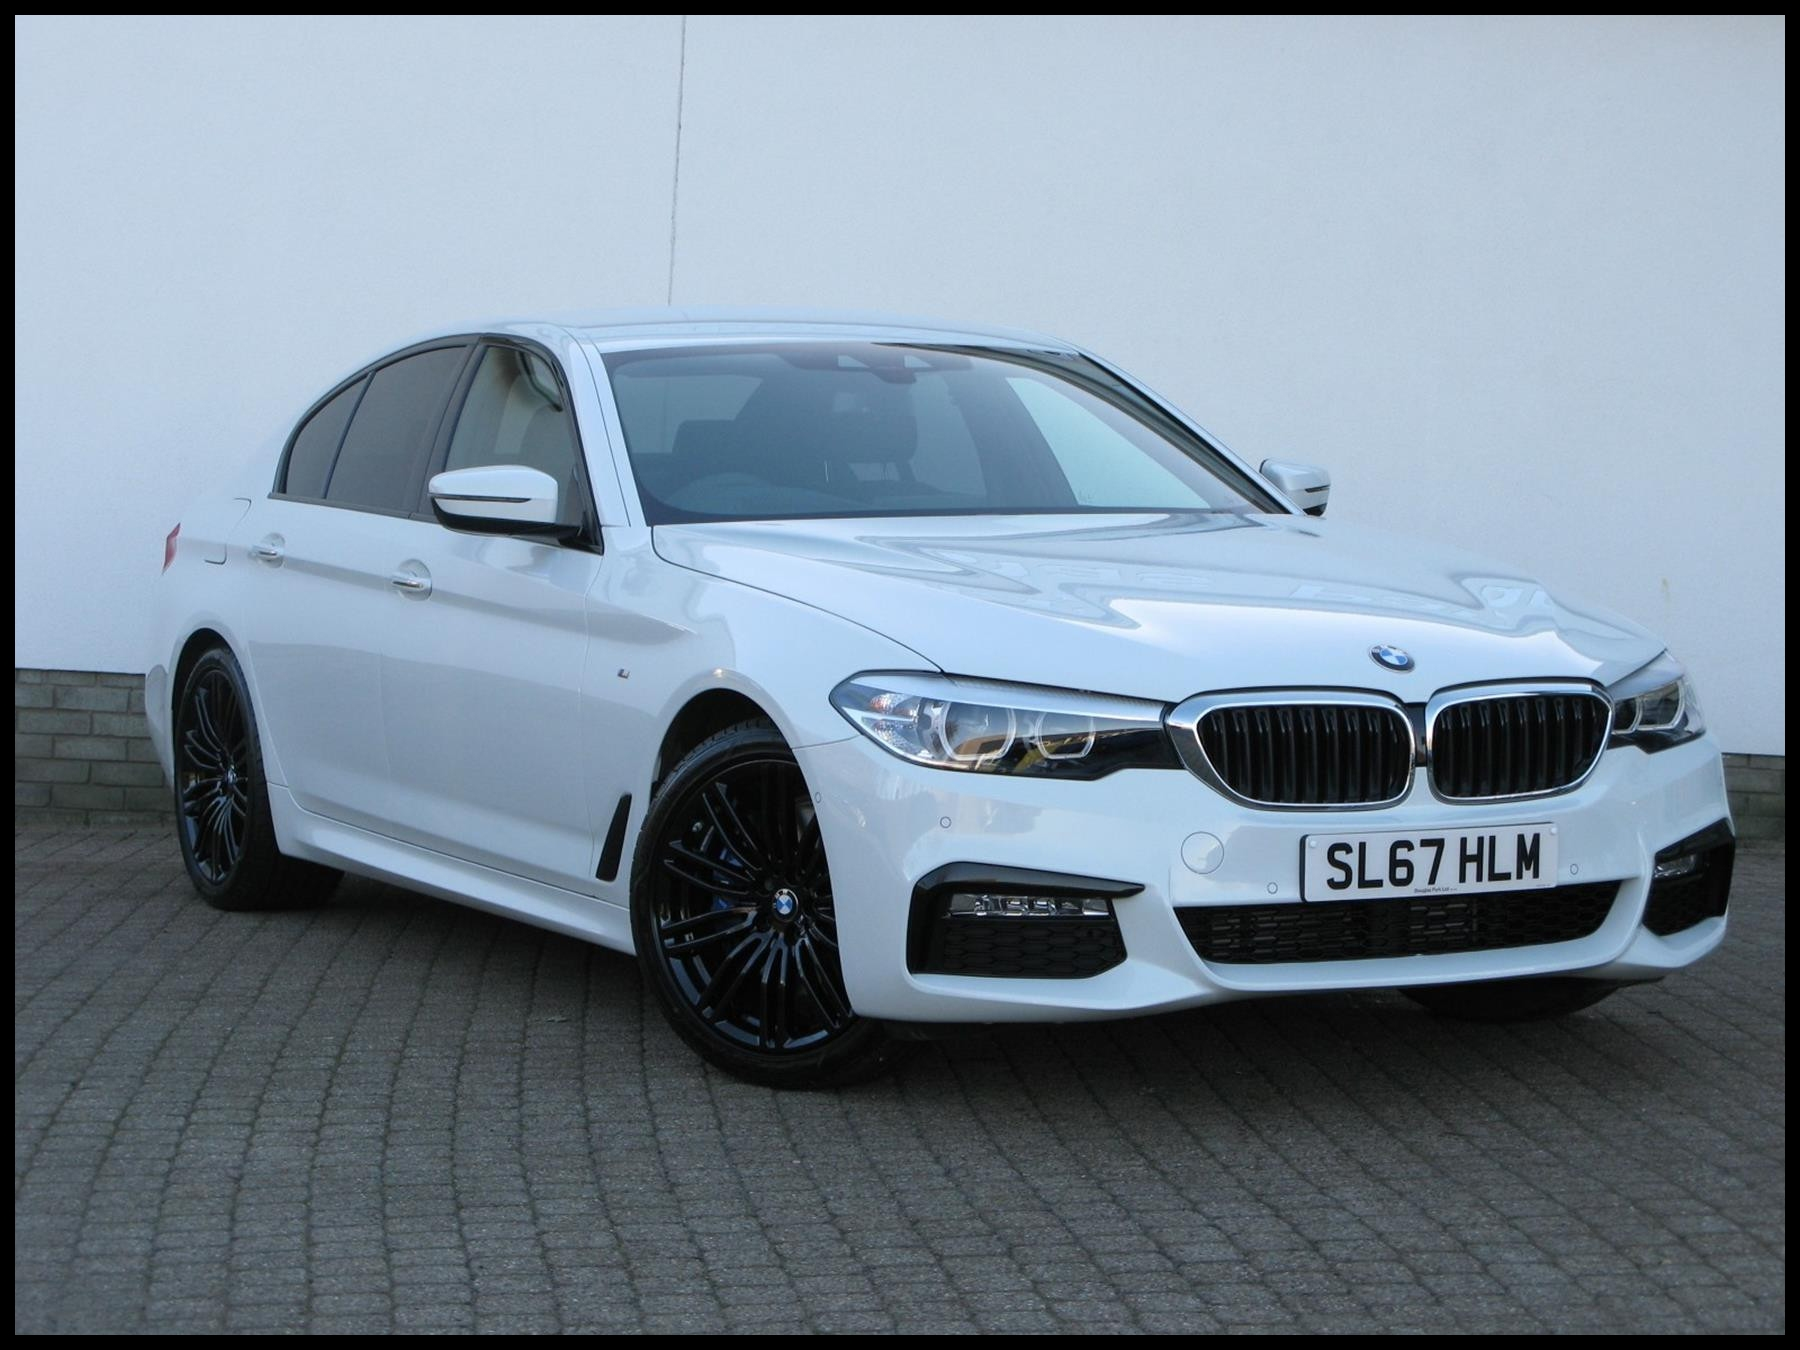 Used Bmw 5 Series M Sport Elegant Used 2017 Bmw 5 Series G30 530d Xdrive M